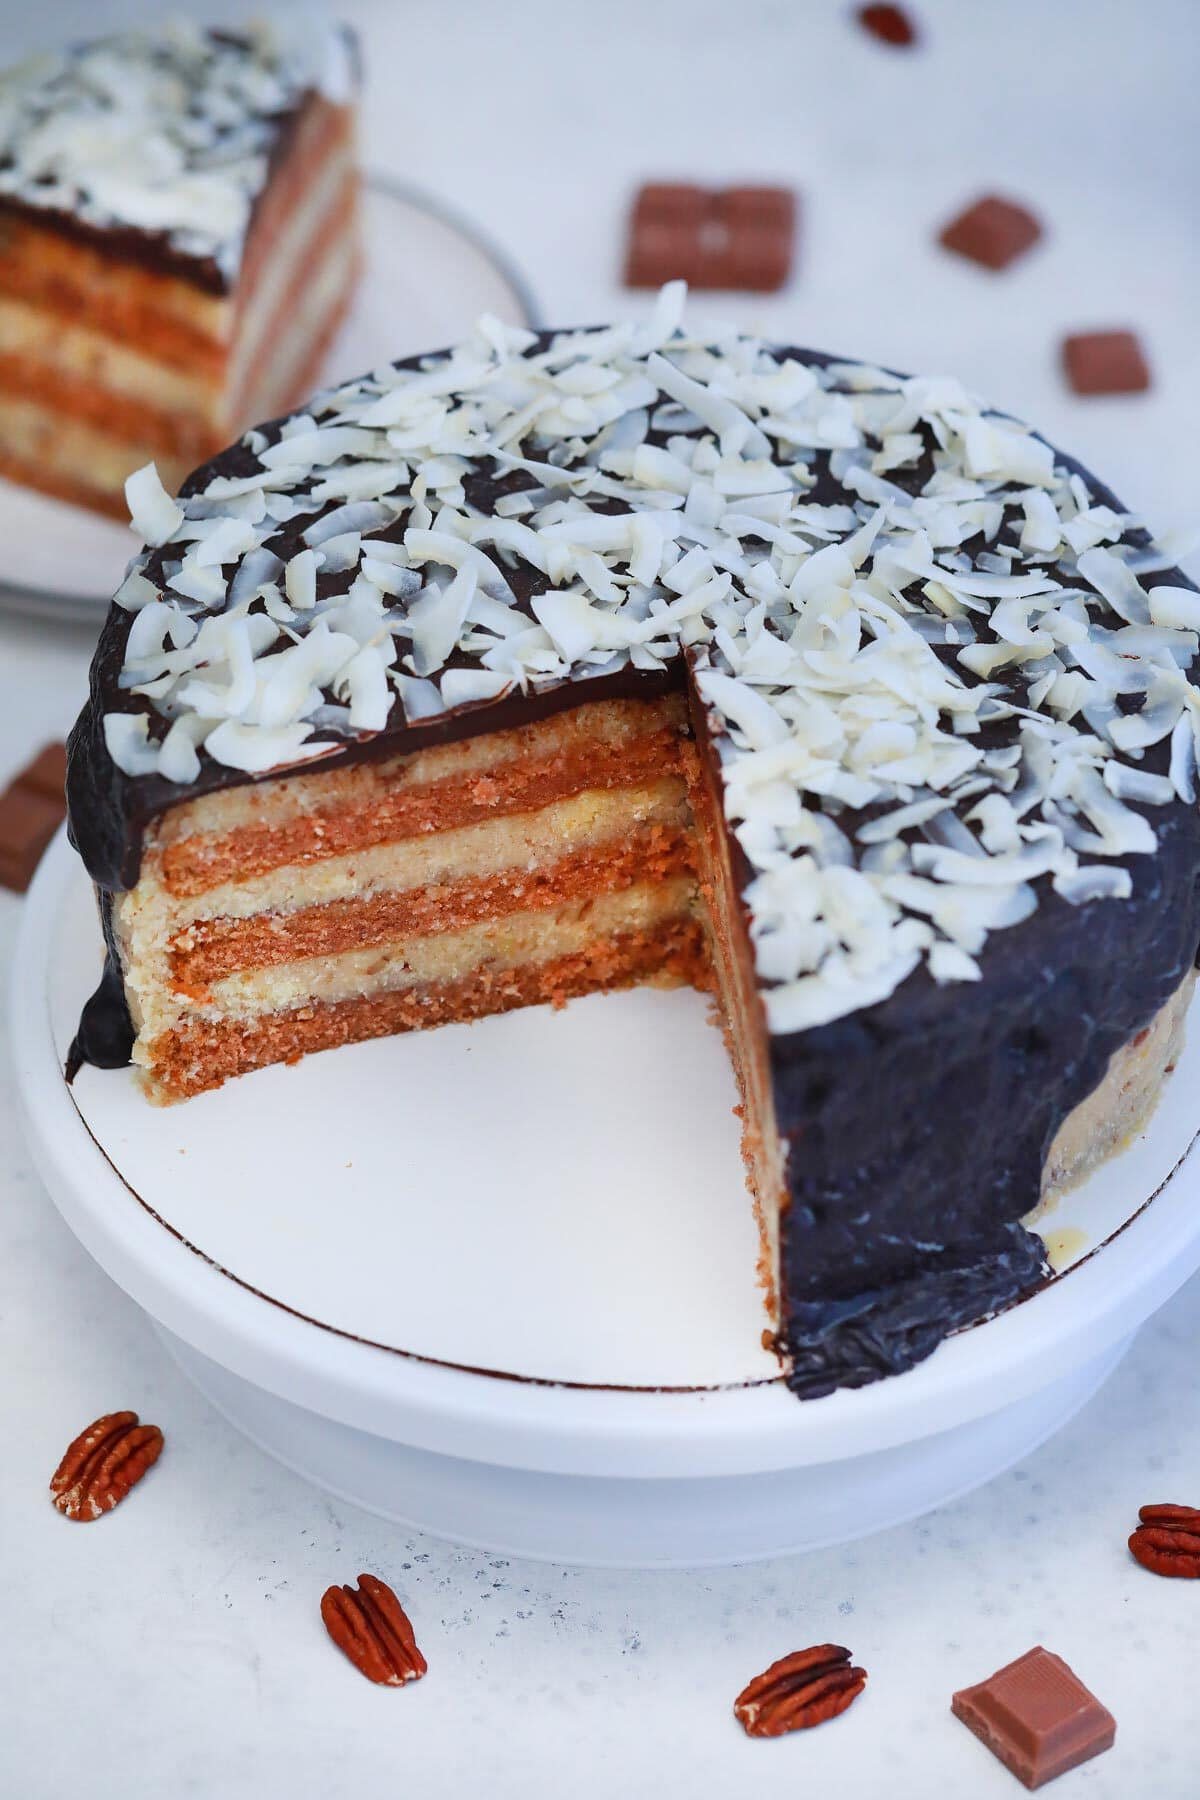 Cake with slice out